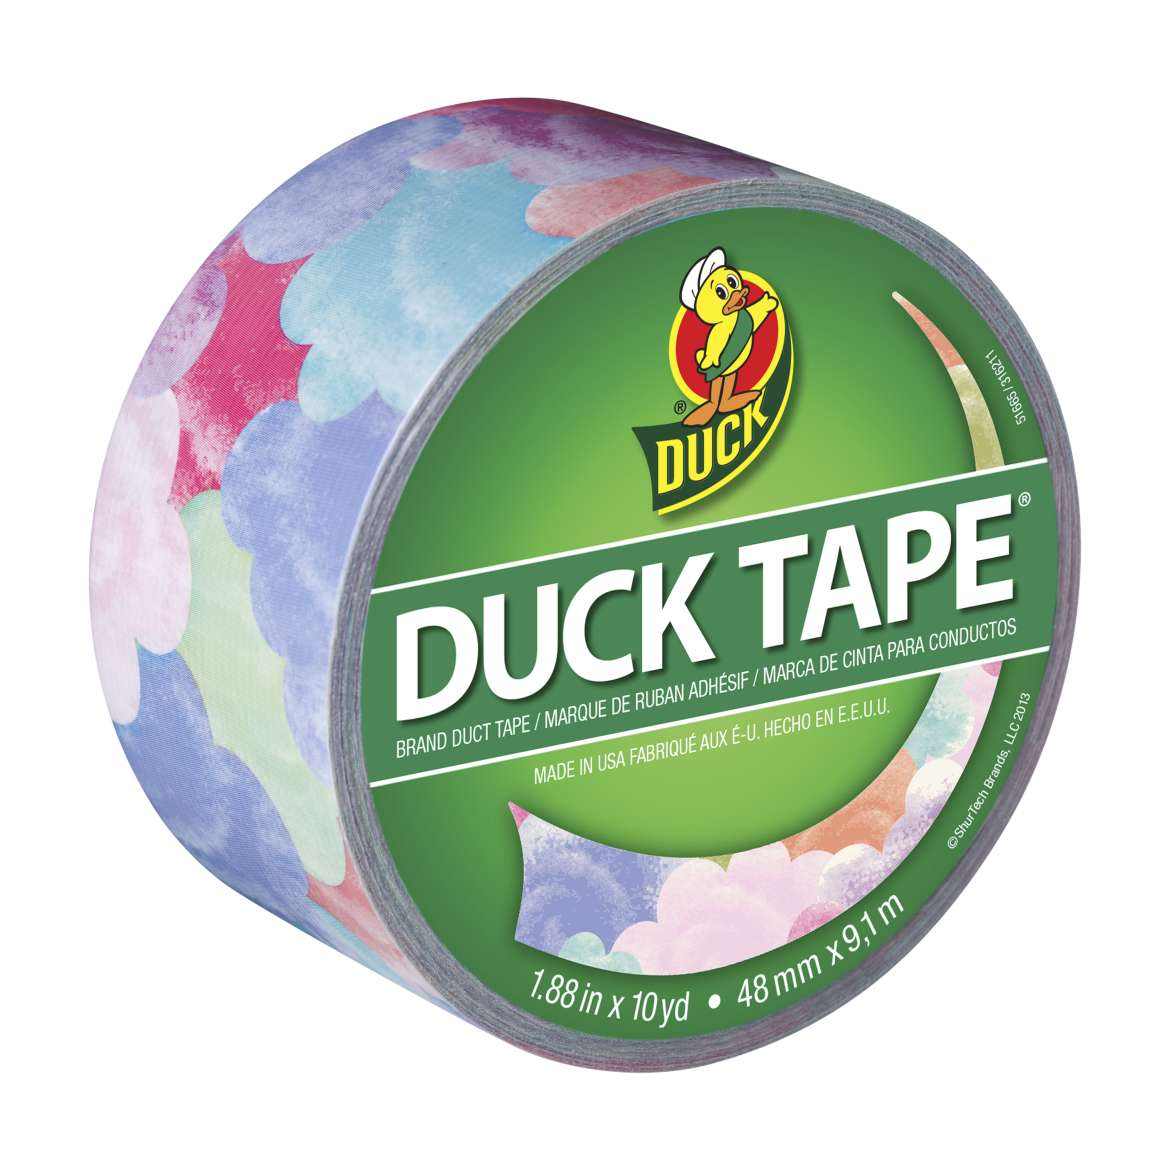 Printed Duck Tape Brand Duct Tape - Cotton Candy, 1.88 in. x 10 yd.